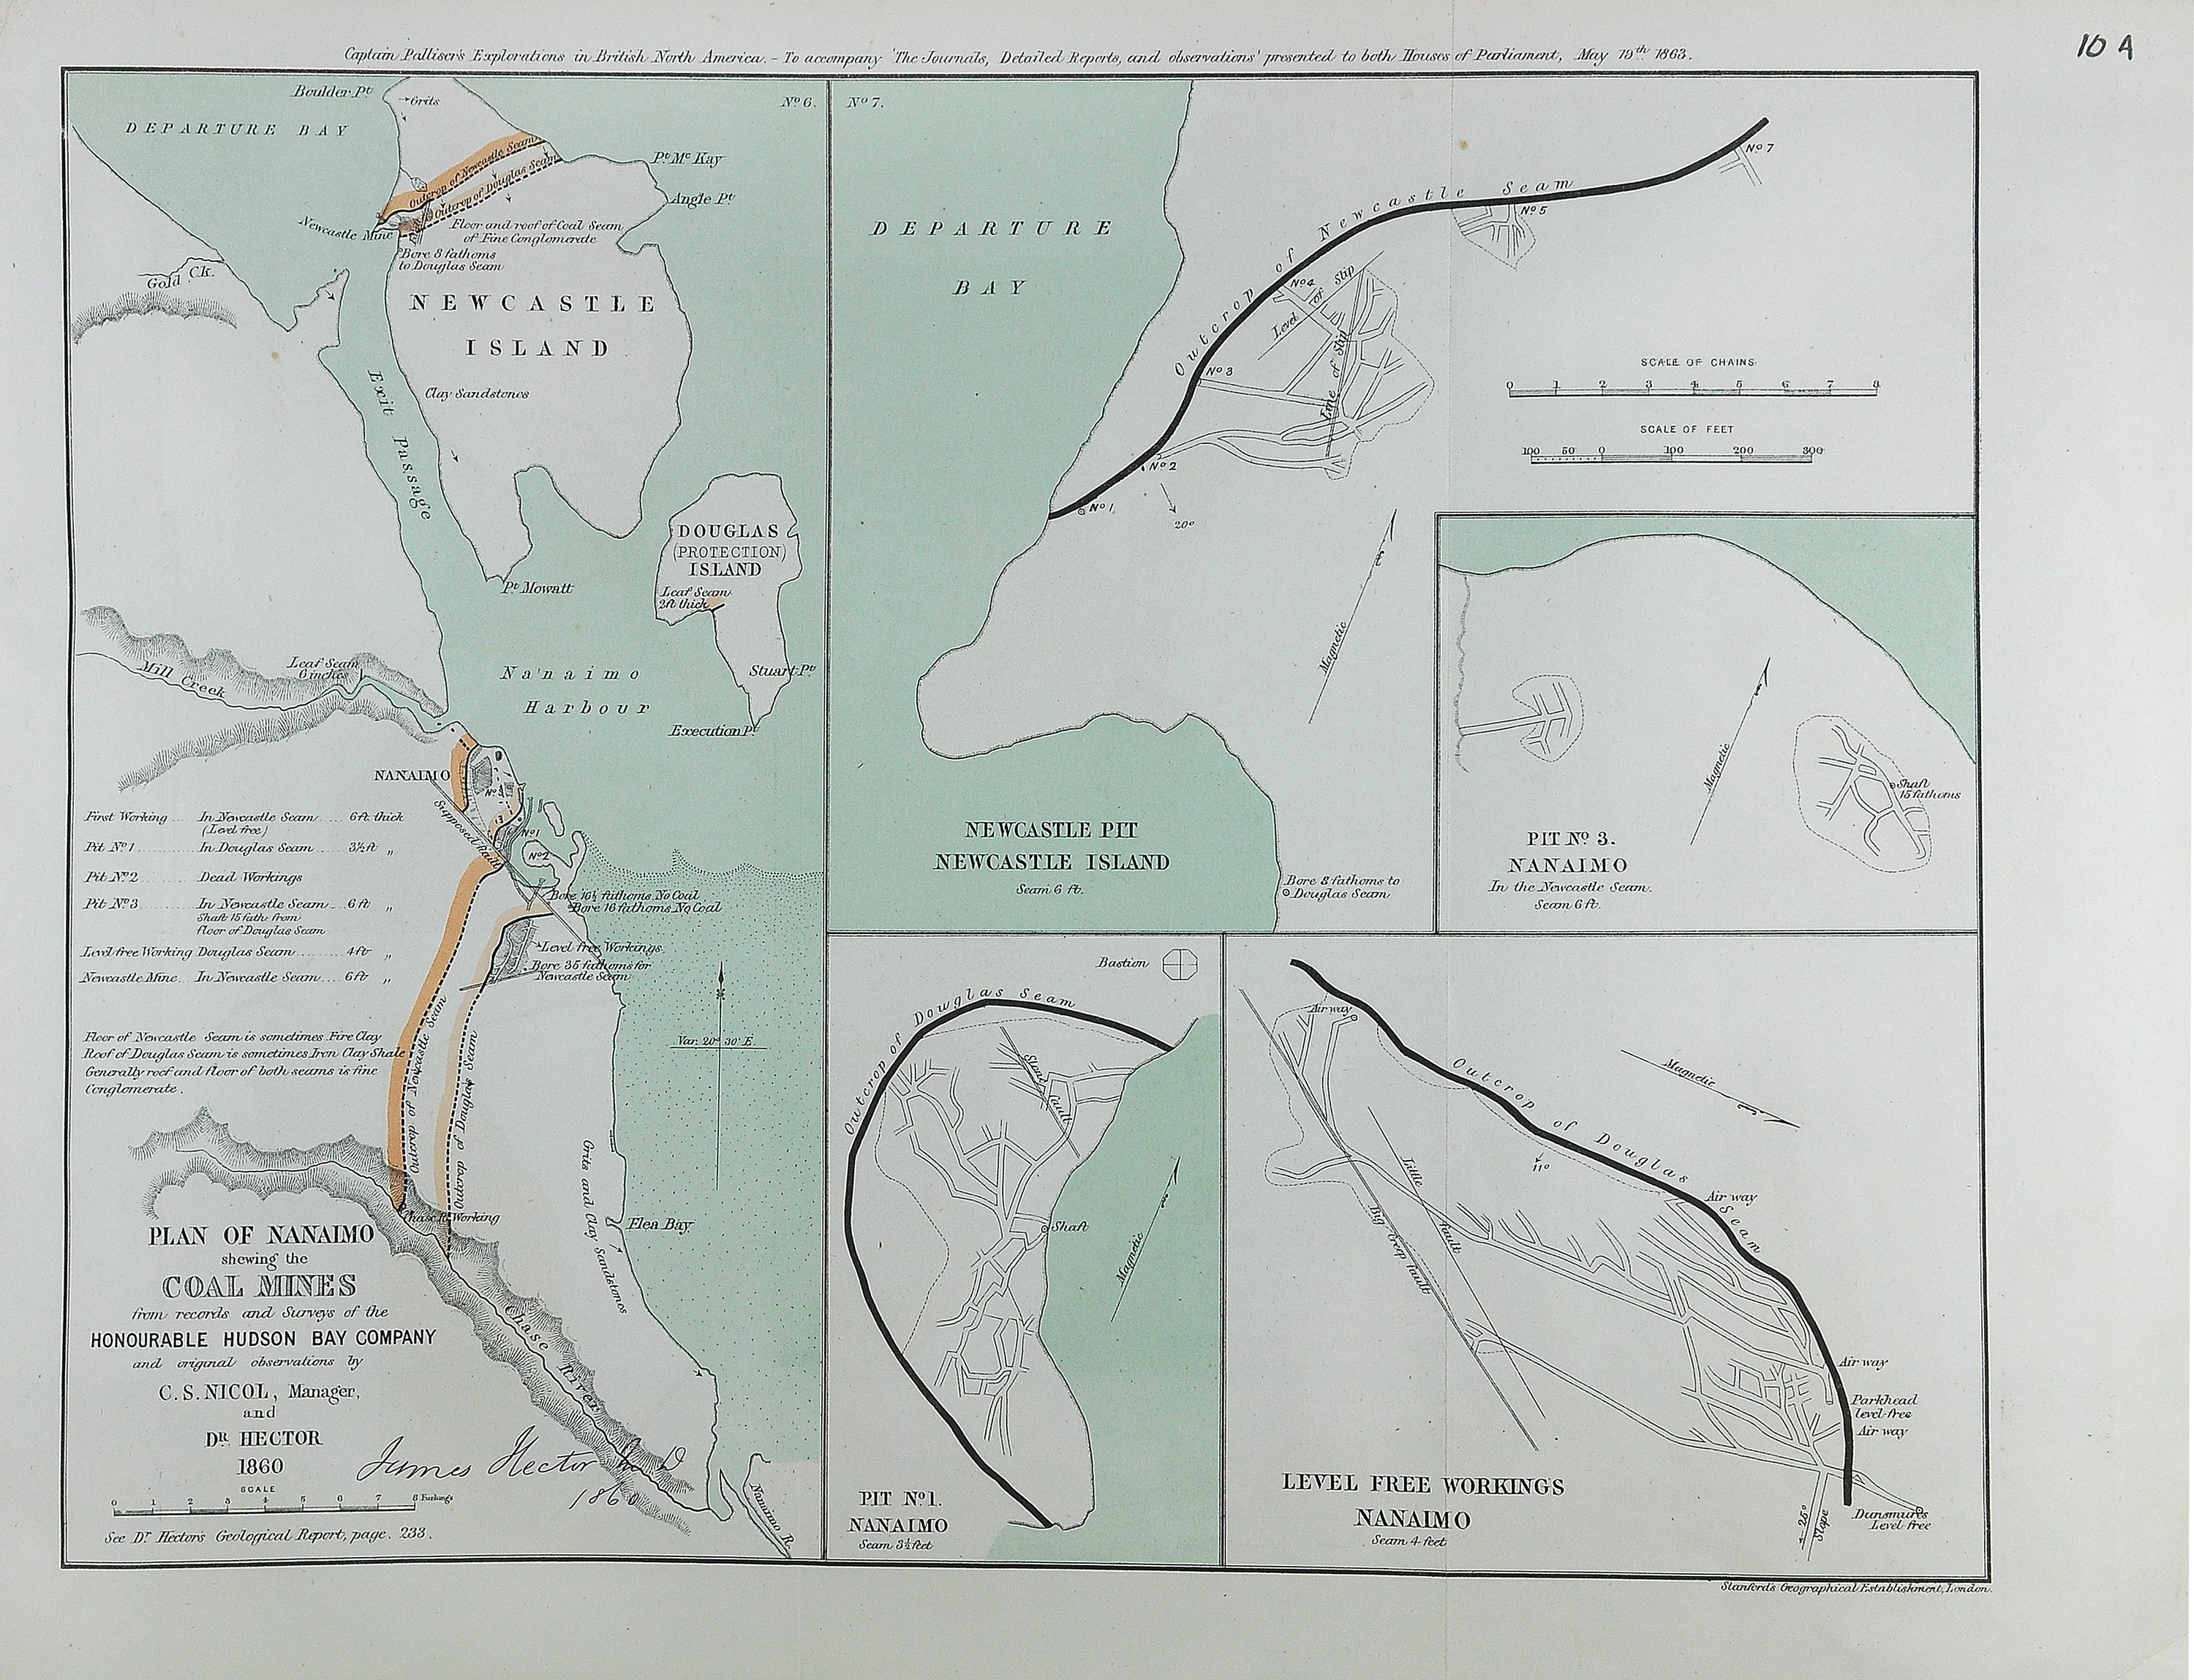 Plan of Nanaimo shewing the coal mines from records and surveys of the Honourable Hudson Bay Company and original observations.